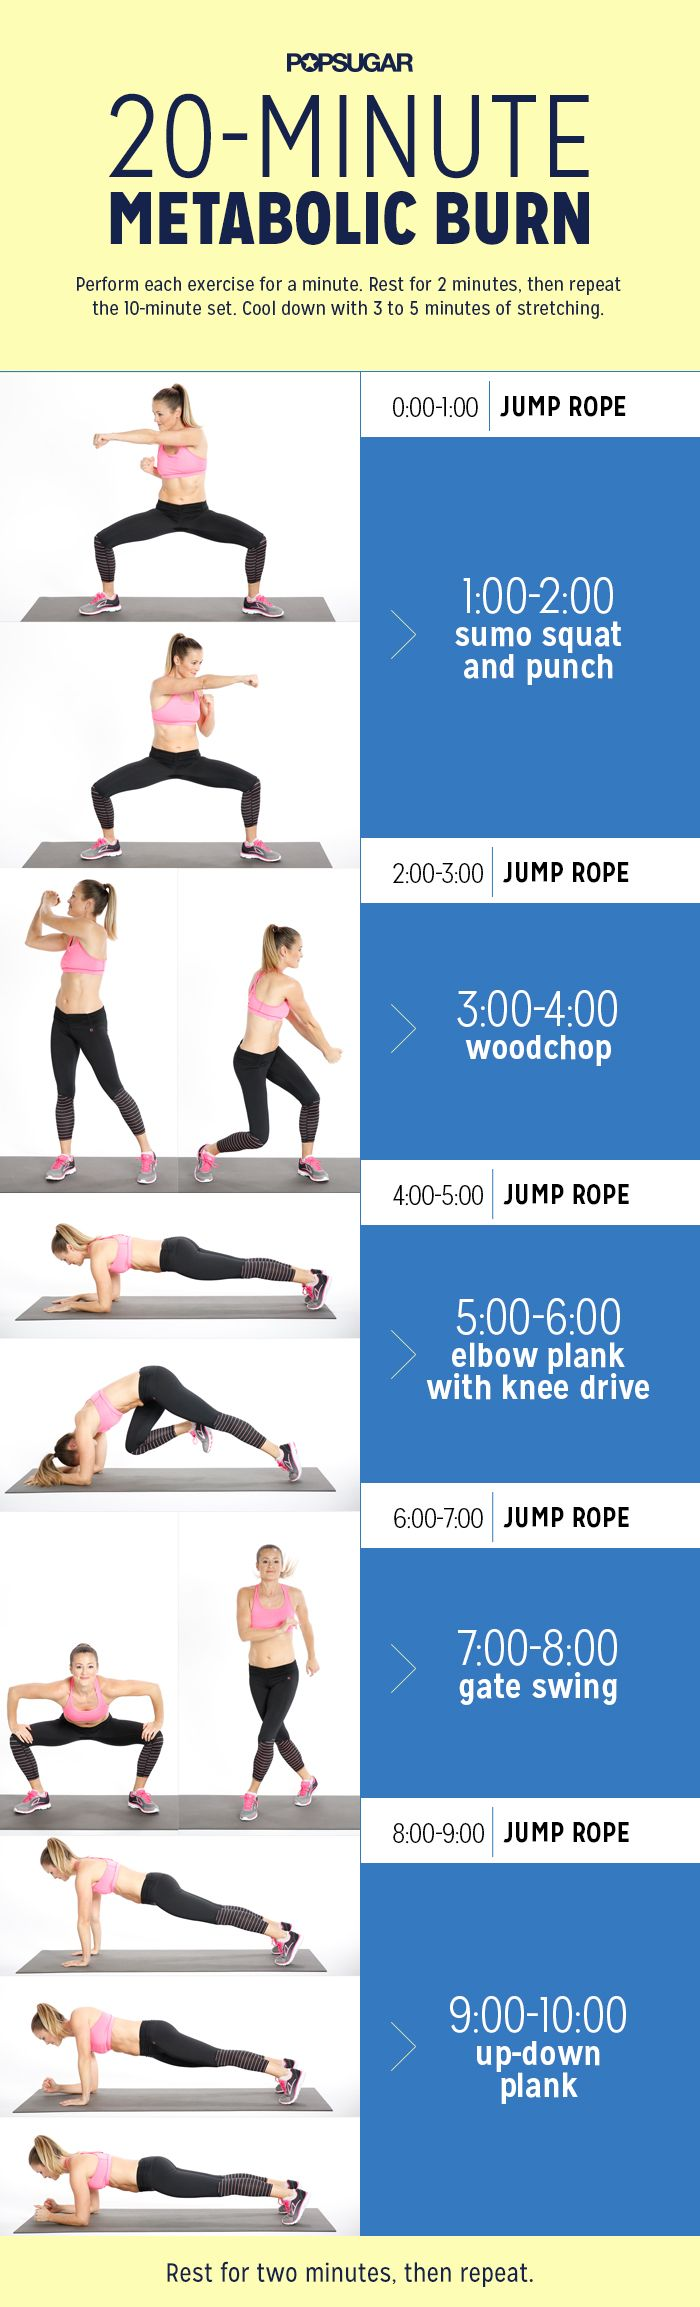 Fitness: Is the 7-Minute Workout too good to be true ...